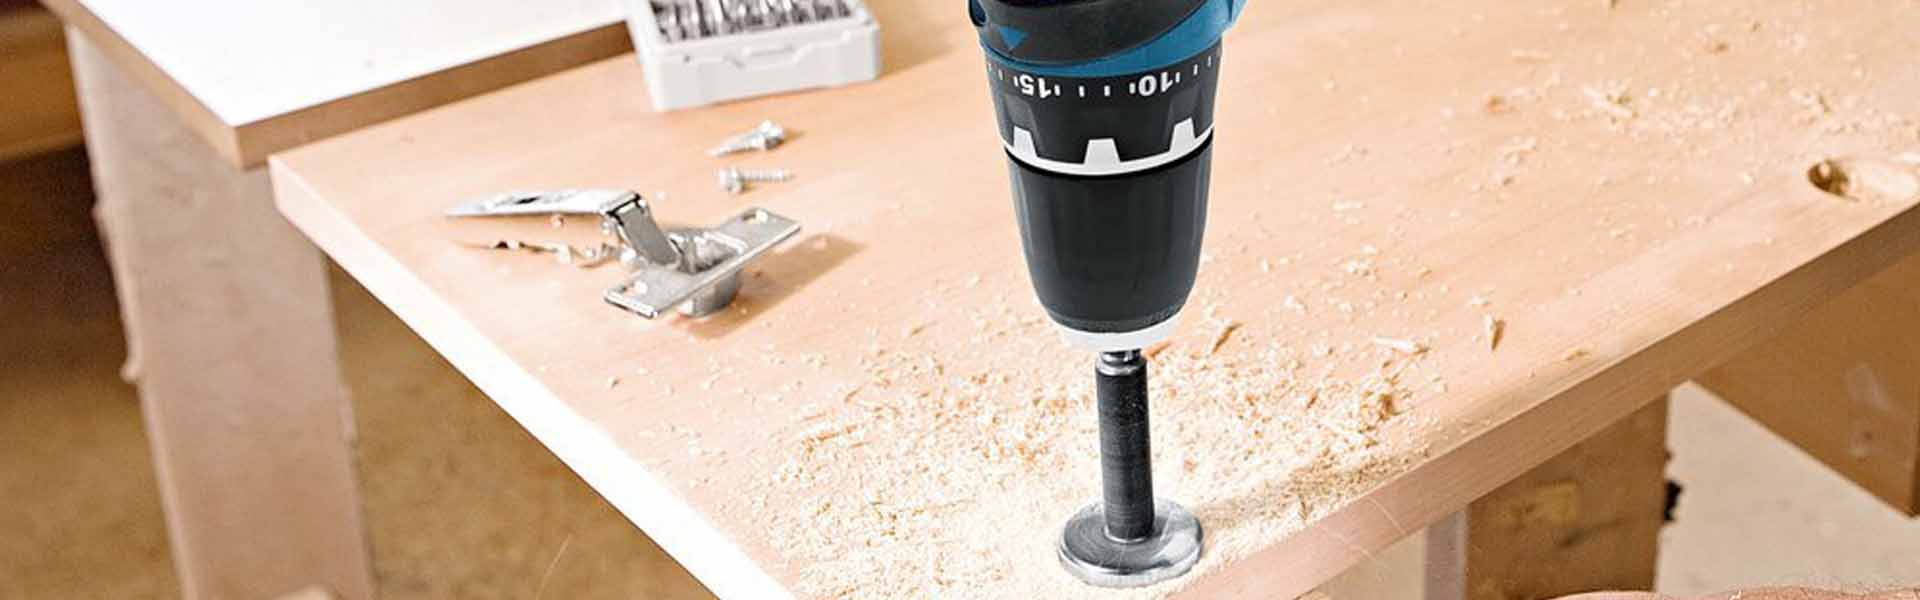 Best Cordless Drill 2019 – Buyer's Guide and Cordless Drill Reviews